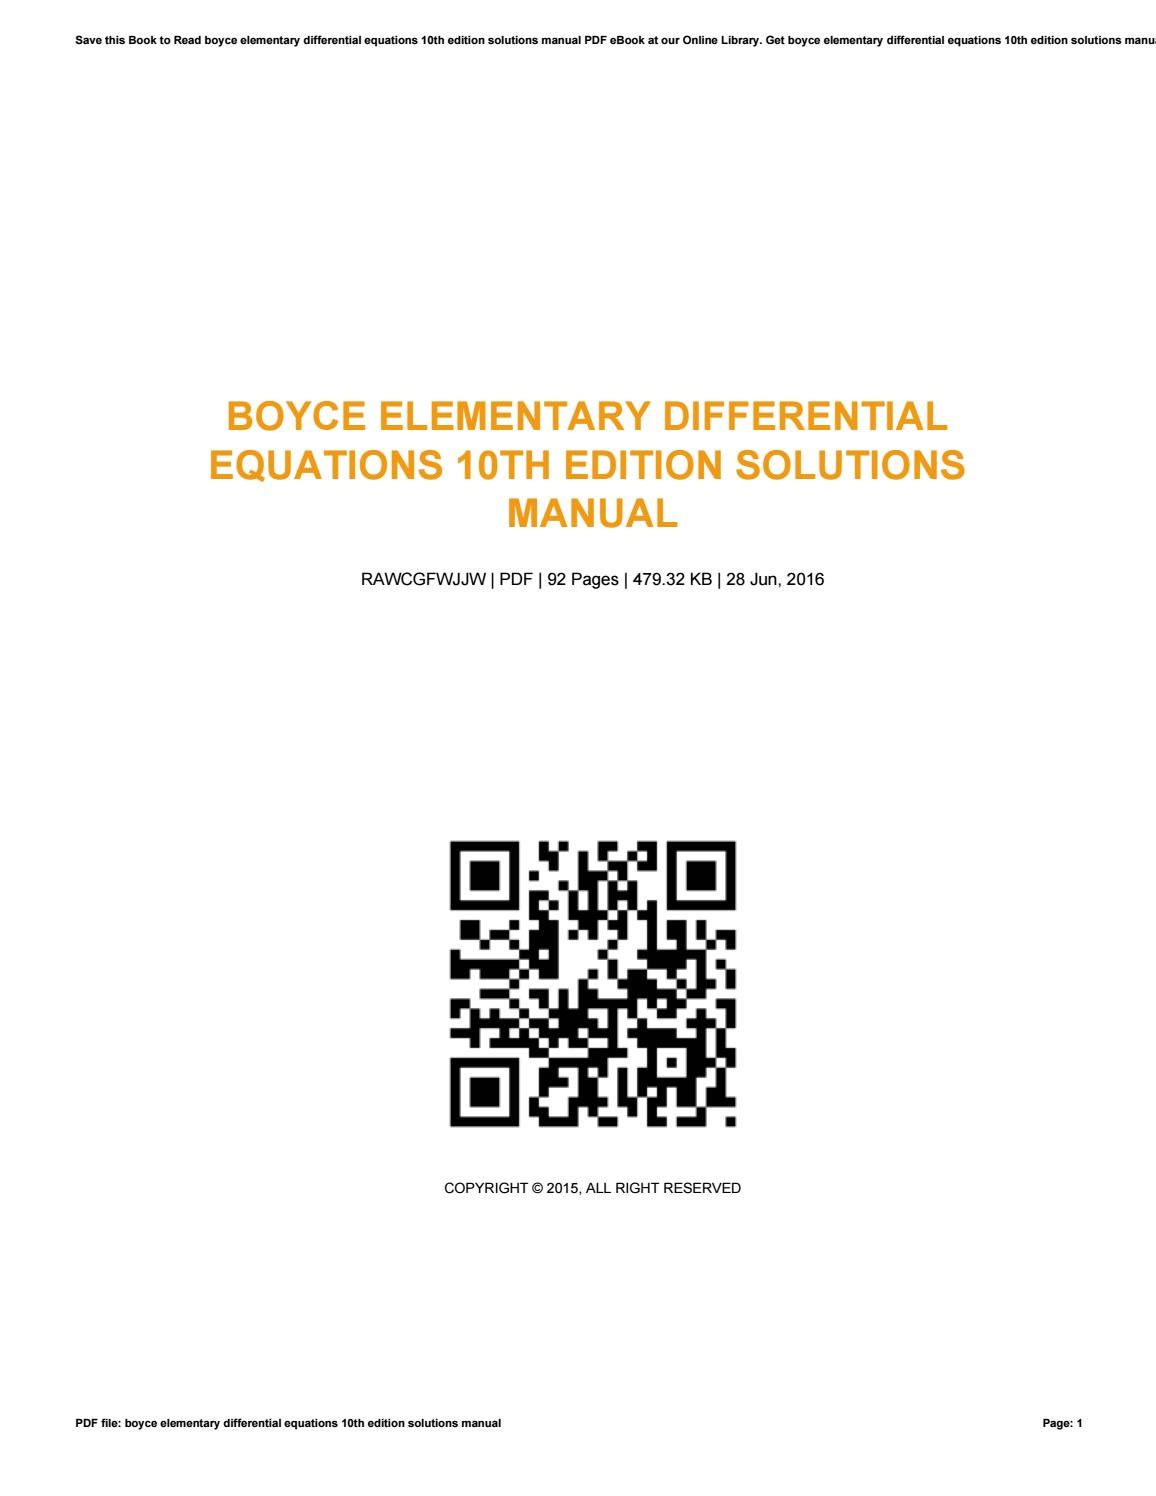 Boyce elementary differential equations 10th edition solutions manual by  Virginia - issuu